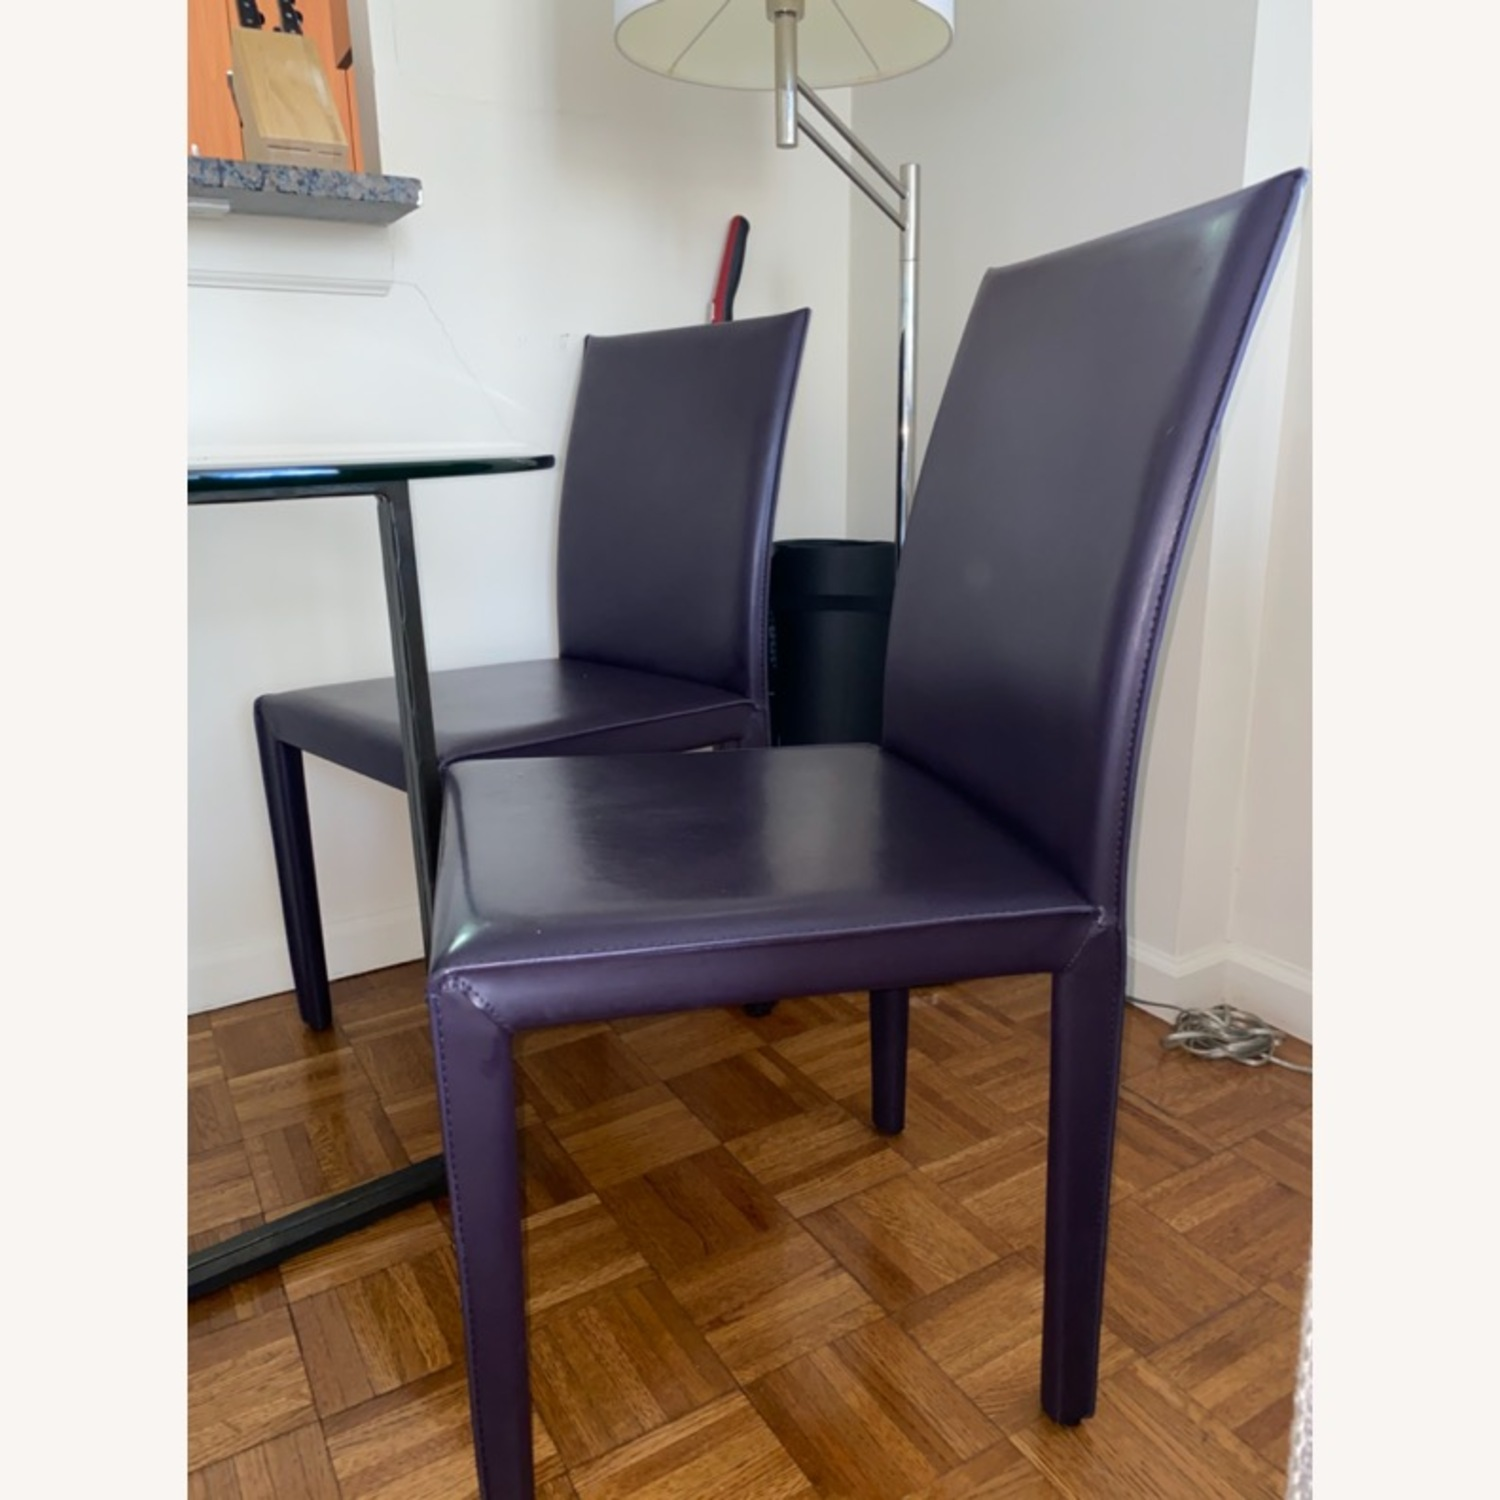 Crate & Barrel Purple Leather Dining Room Chairs - image-2